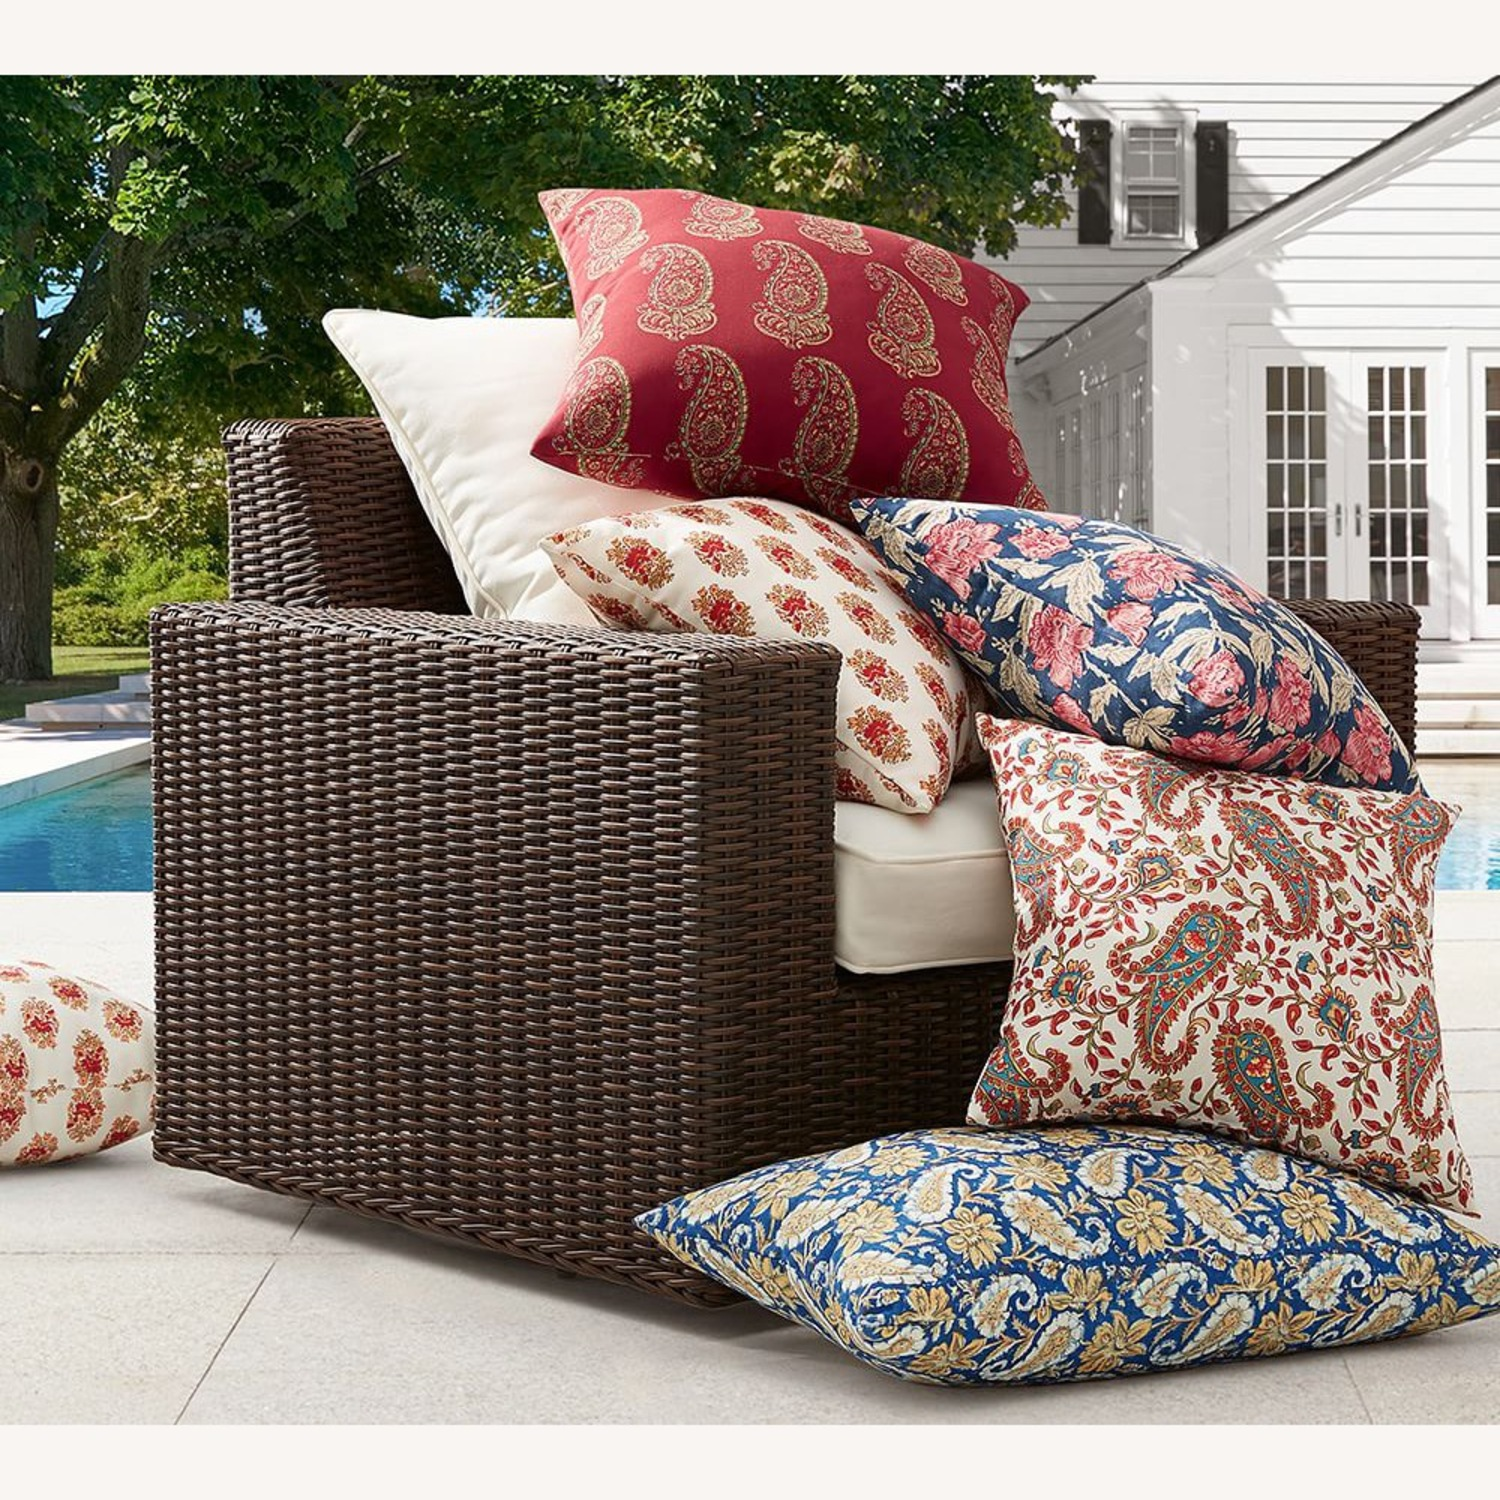 Pottery Barn Indoor/Outdoor Pillow - Set of 8 - image-2